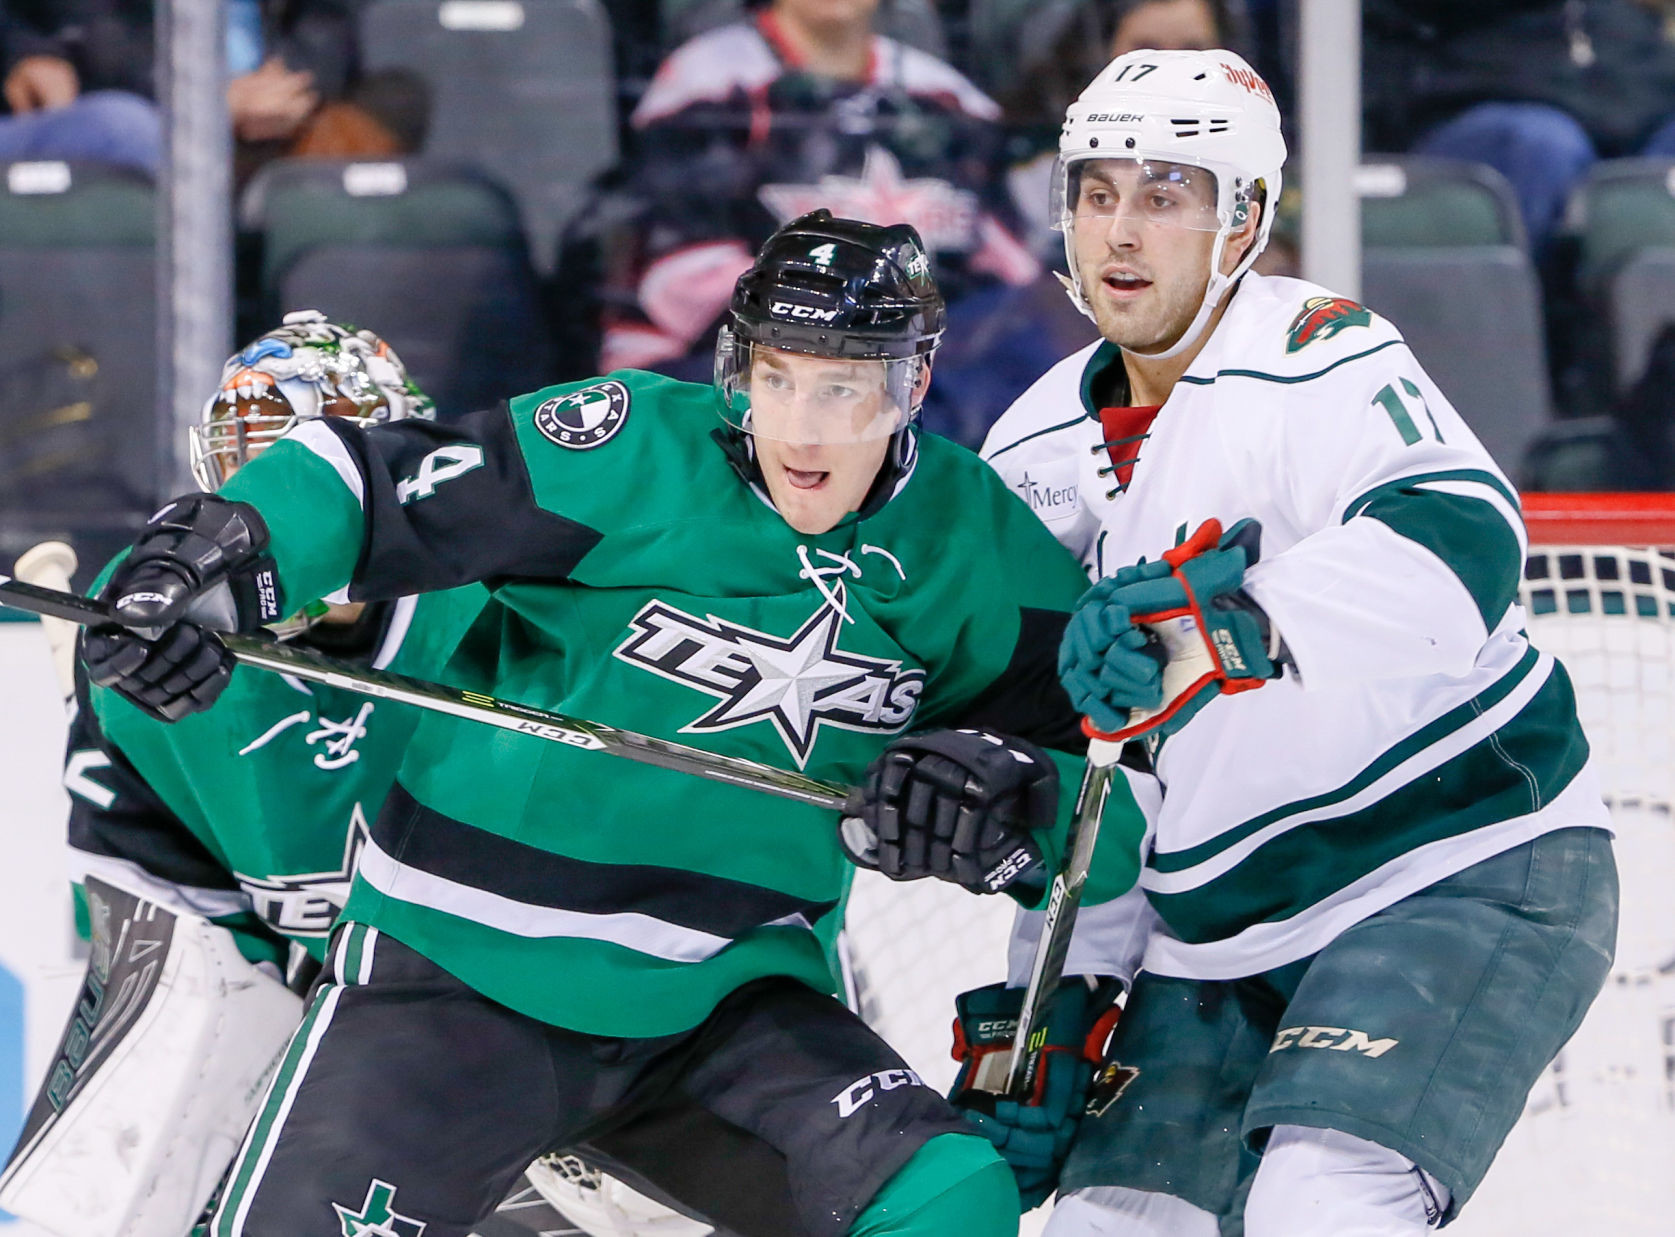 Defenseman Darren Dietz was reassigned to Texas from the Hershey Bears ahead of last weekend's two-game series against the Iowa Wild. He has two shots in his first three game with the Stars.